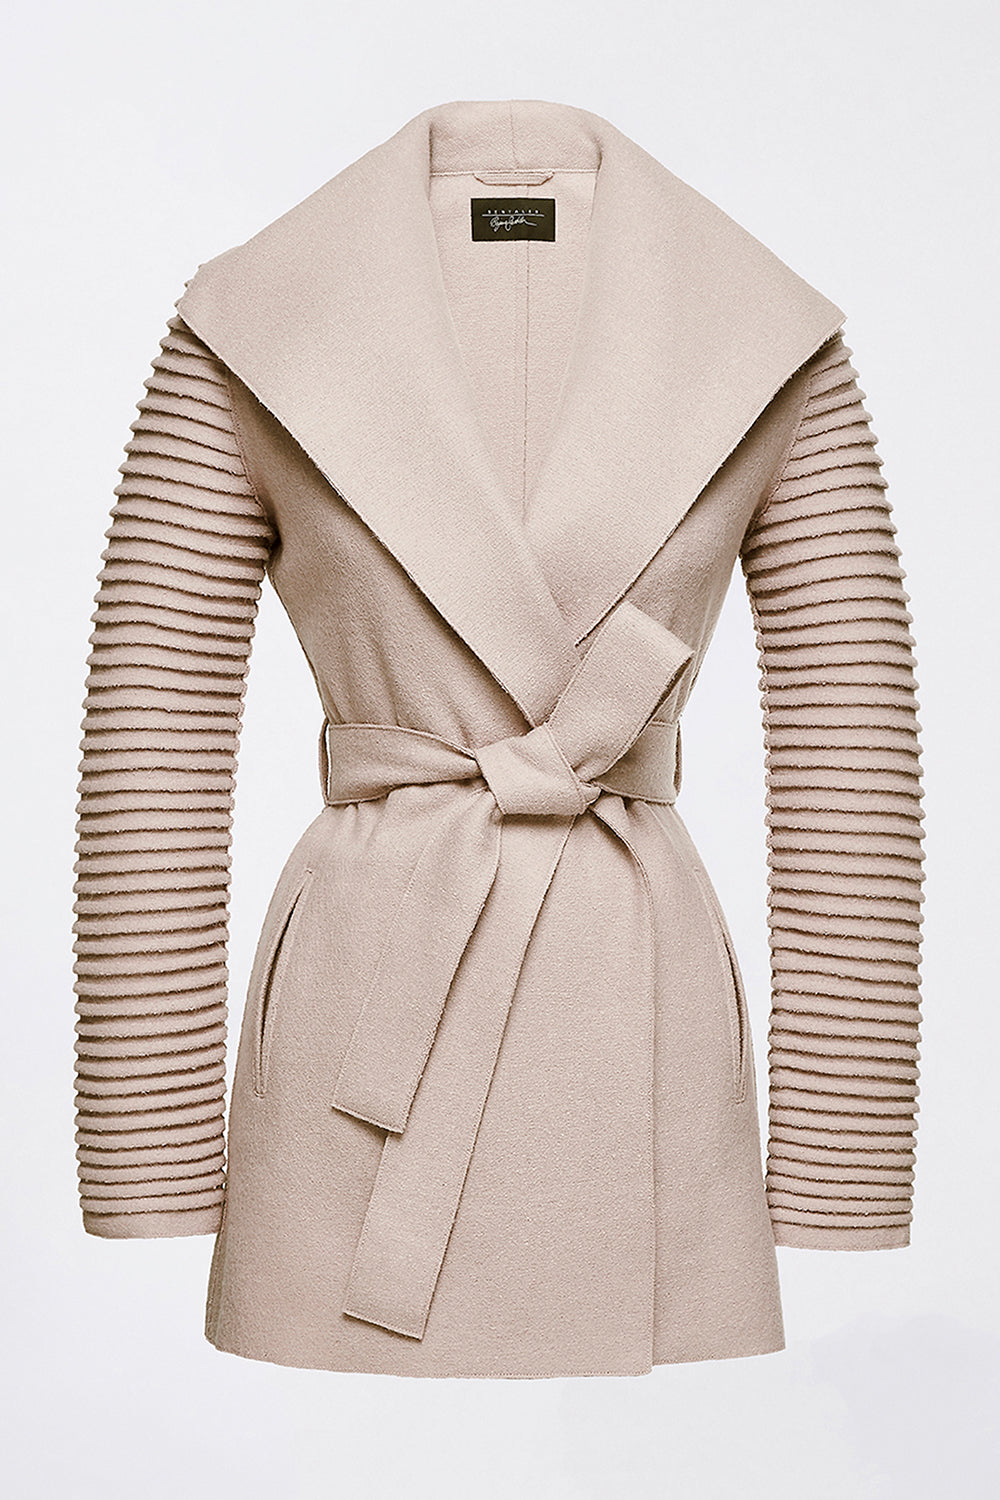 Sentaler Wrap Coat with Ribbed Sleeves featured in Superfine Alpaca and available in Chamois. Seen off model.